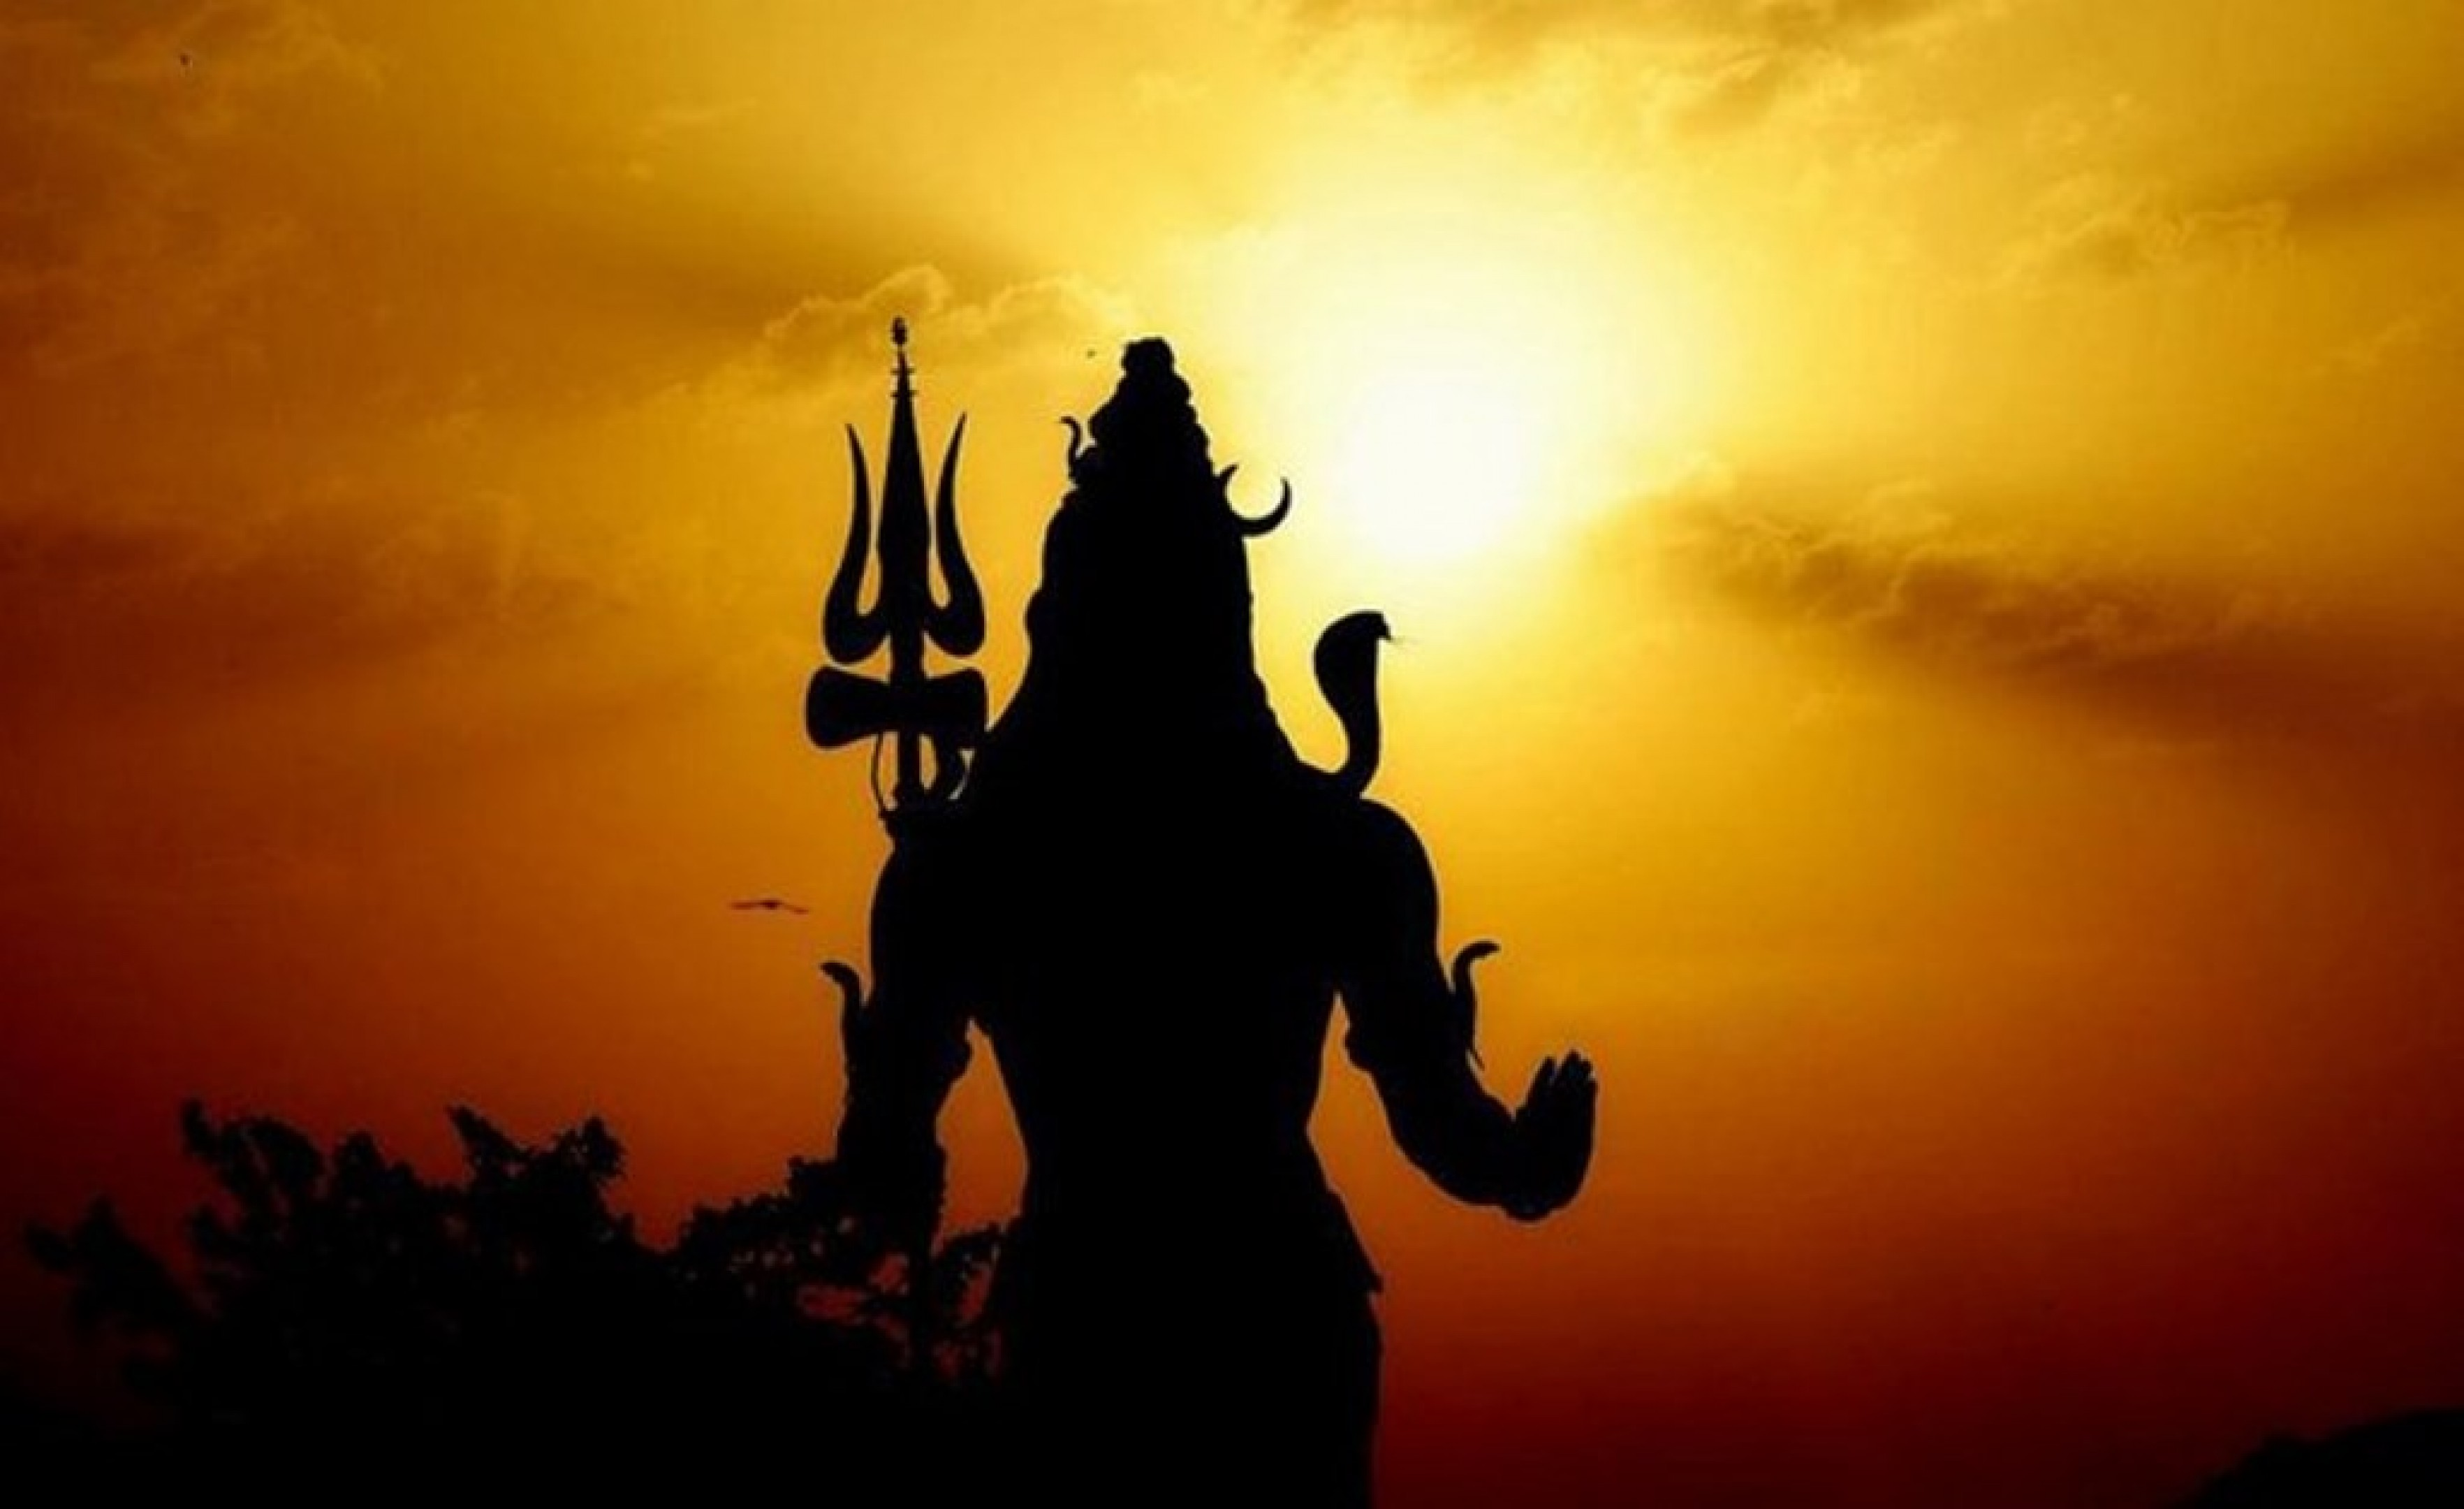 Lord Shiva God Hd Wallpapers Freshwidewallpapers Com 4k 5k 8k Hd Desktop Wallpapers For Ultra High Definition Widescreen Desktop Tablet Smartphone Wallpapers